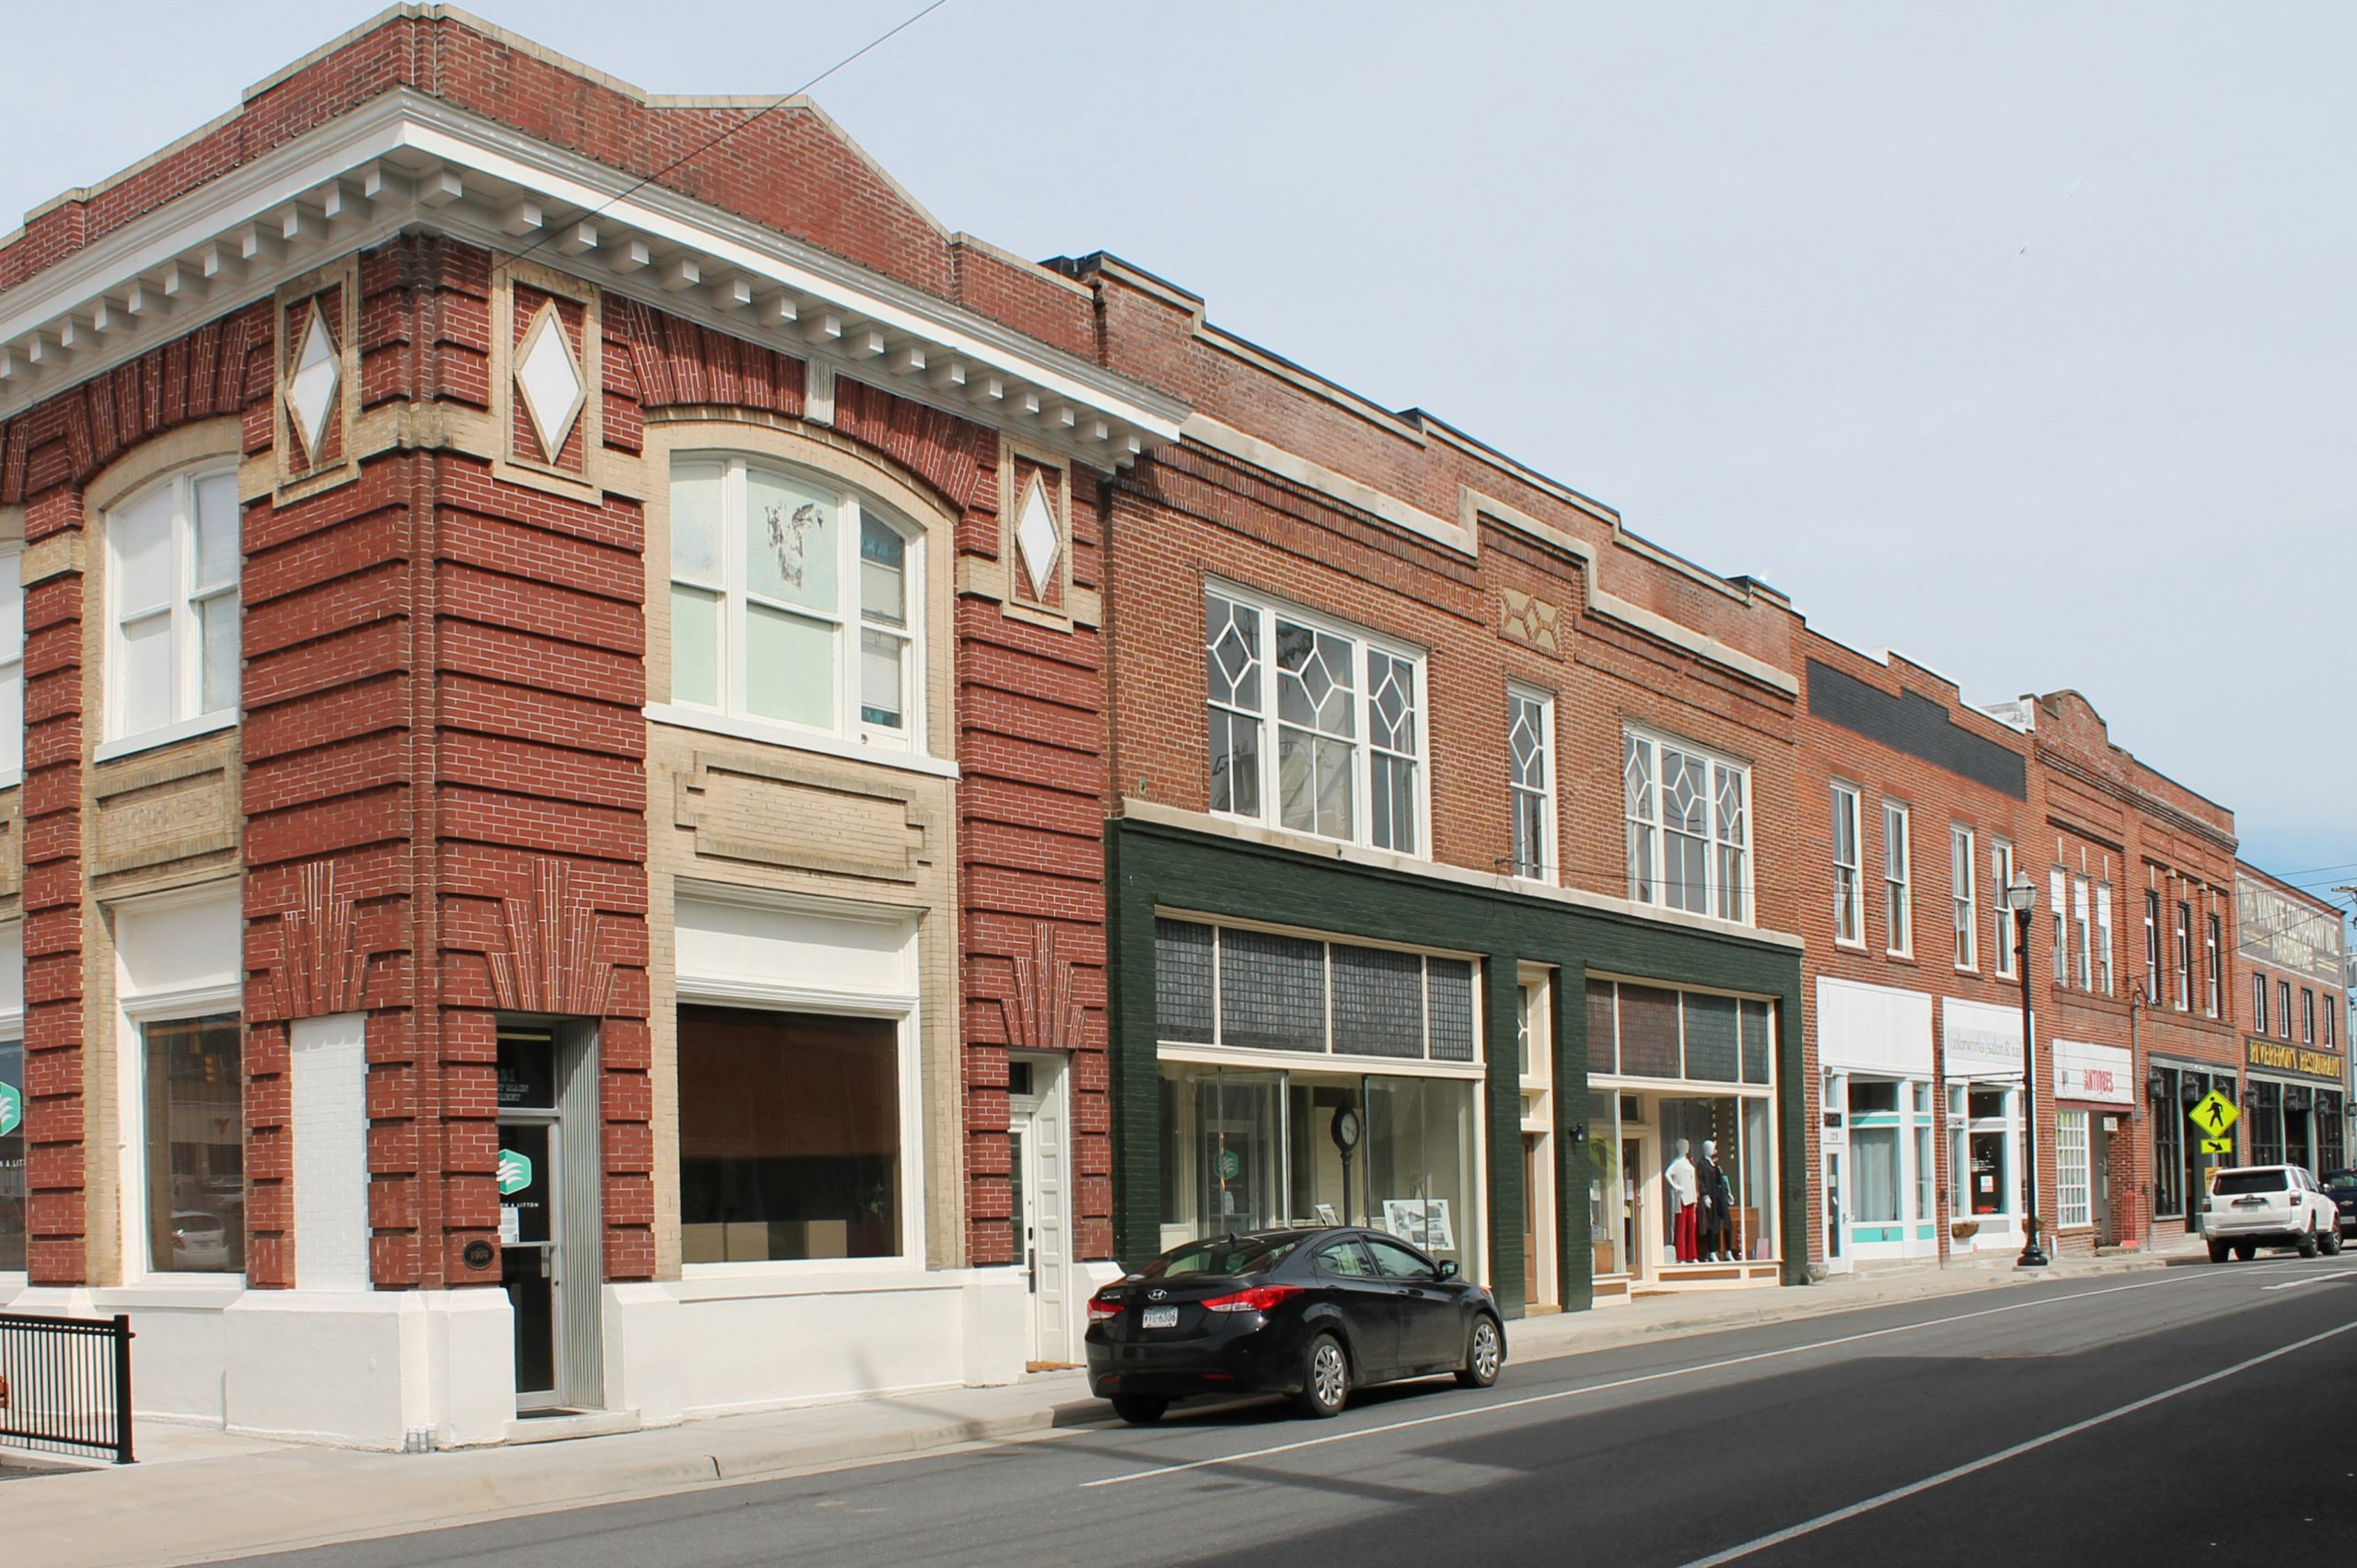 Downtown Chilhowie Historic District